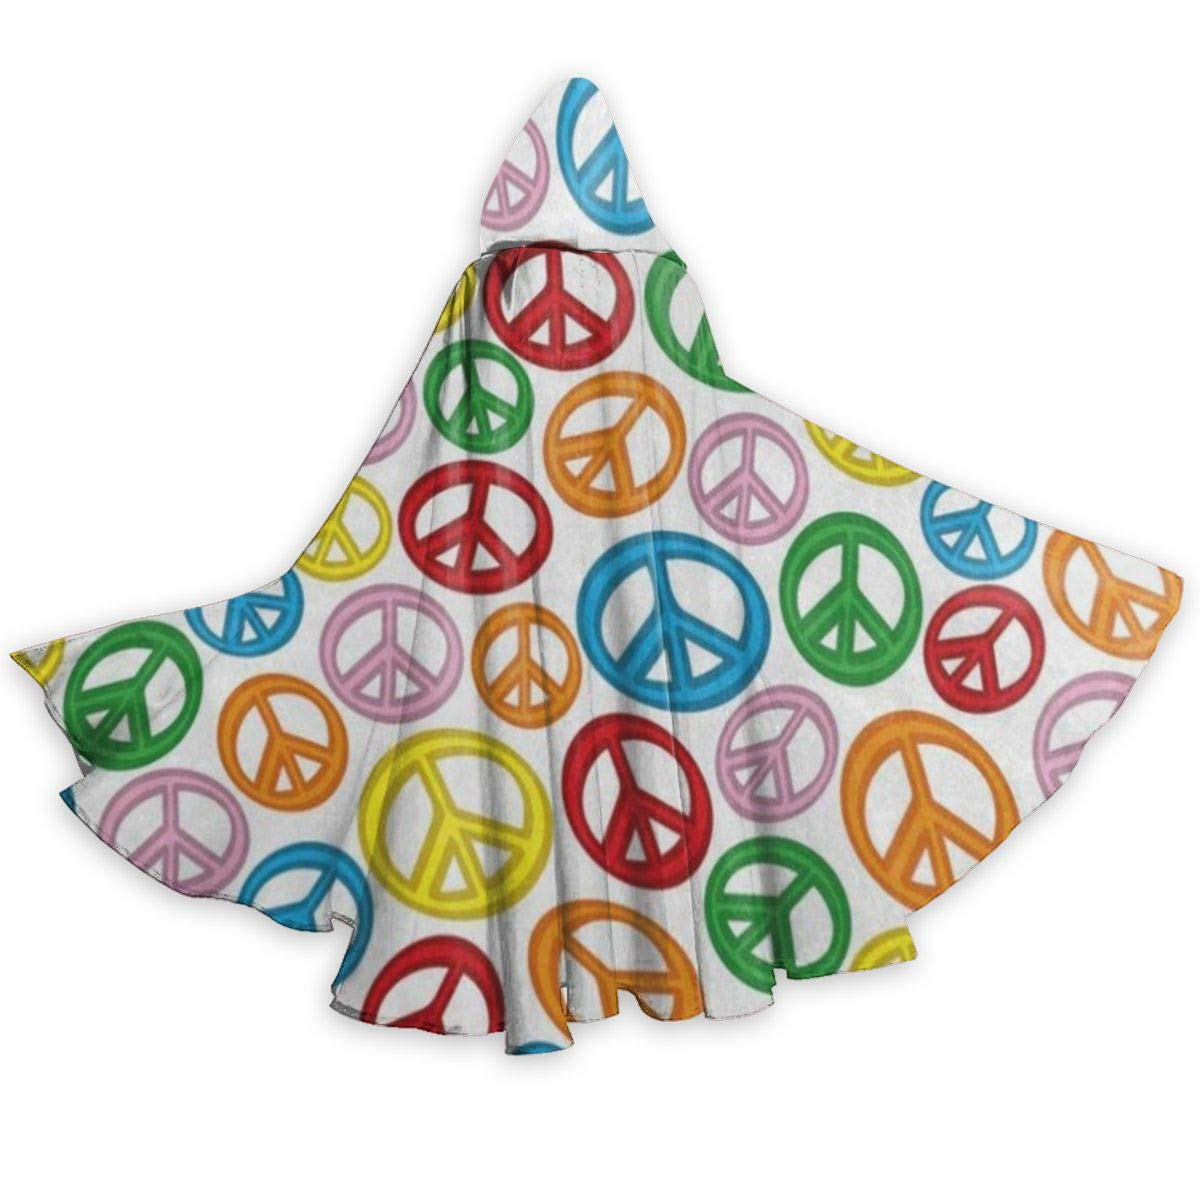 YETSH Hooded Cloak Long Cape Colorful Peace Sign for Adults Halloween Cosplay Costumes